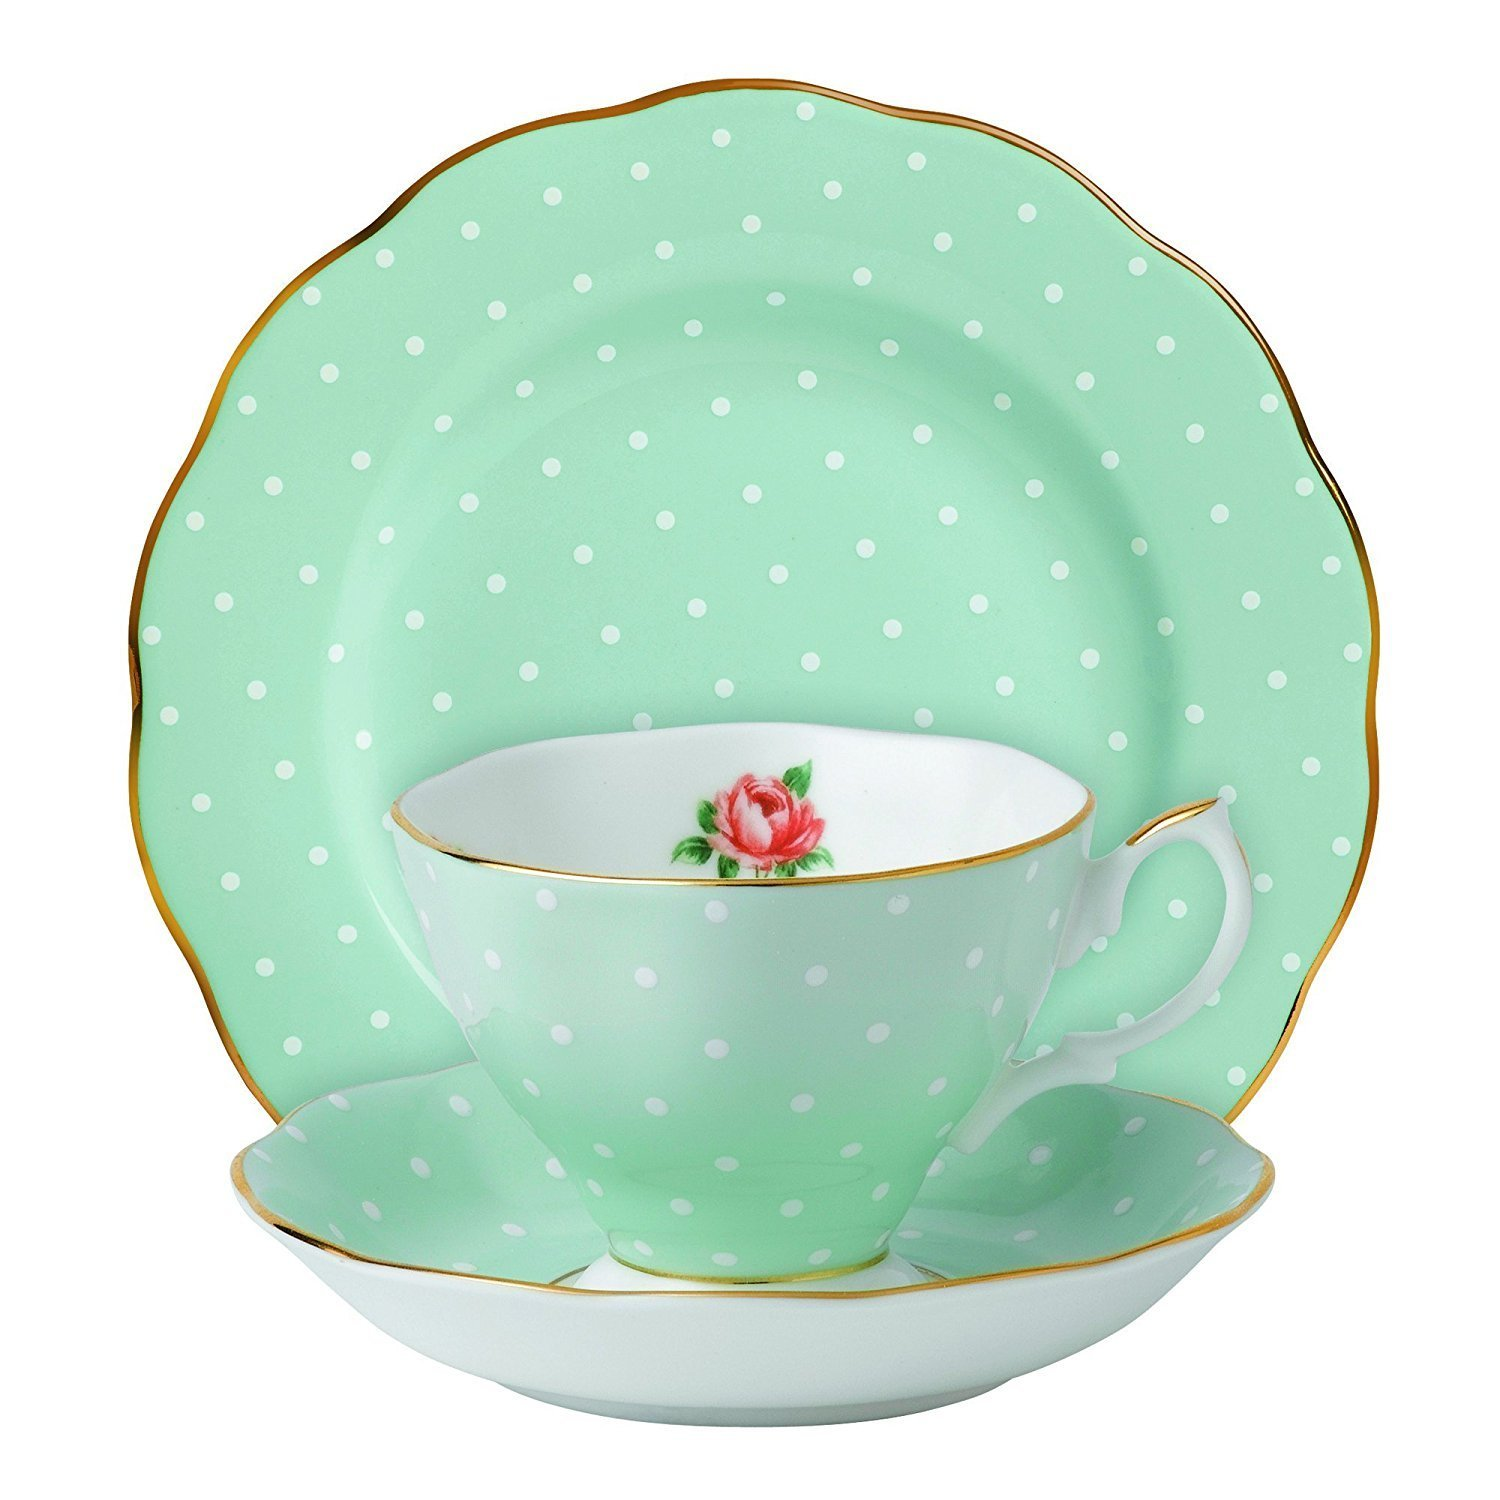 Royal Albert New Country Roses Polka Rose Teacup, Saucer And Plate, Set of 2 Each